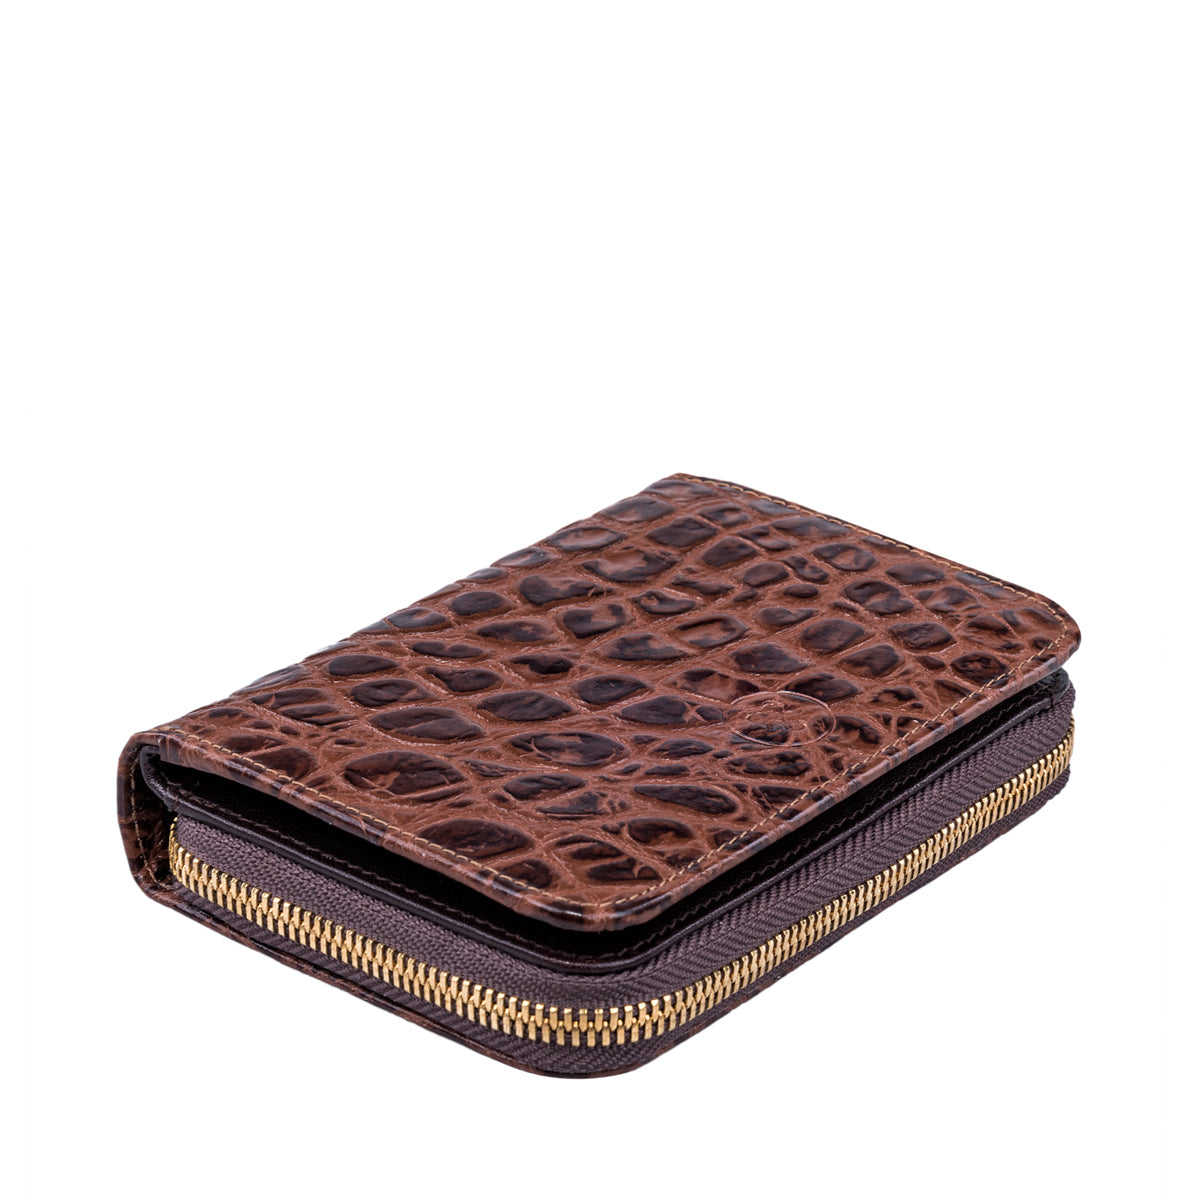 Image 5 of the 'Forino' Chocolate Mock Croc Veg Tanned Leather Purse